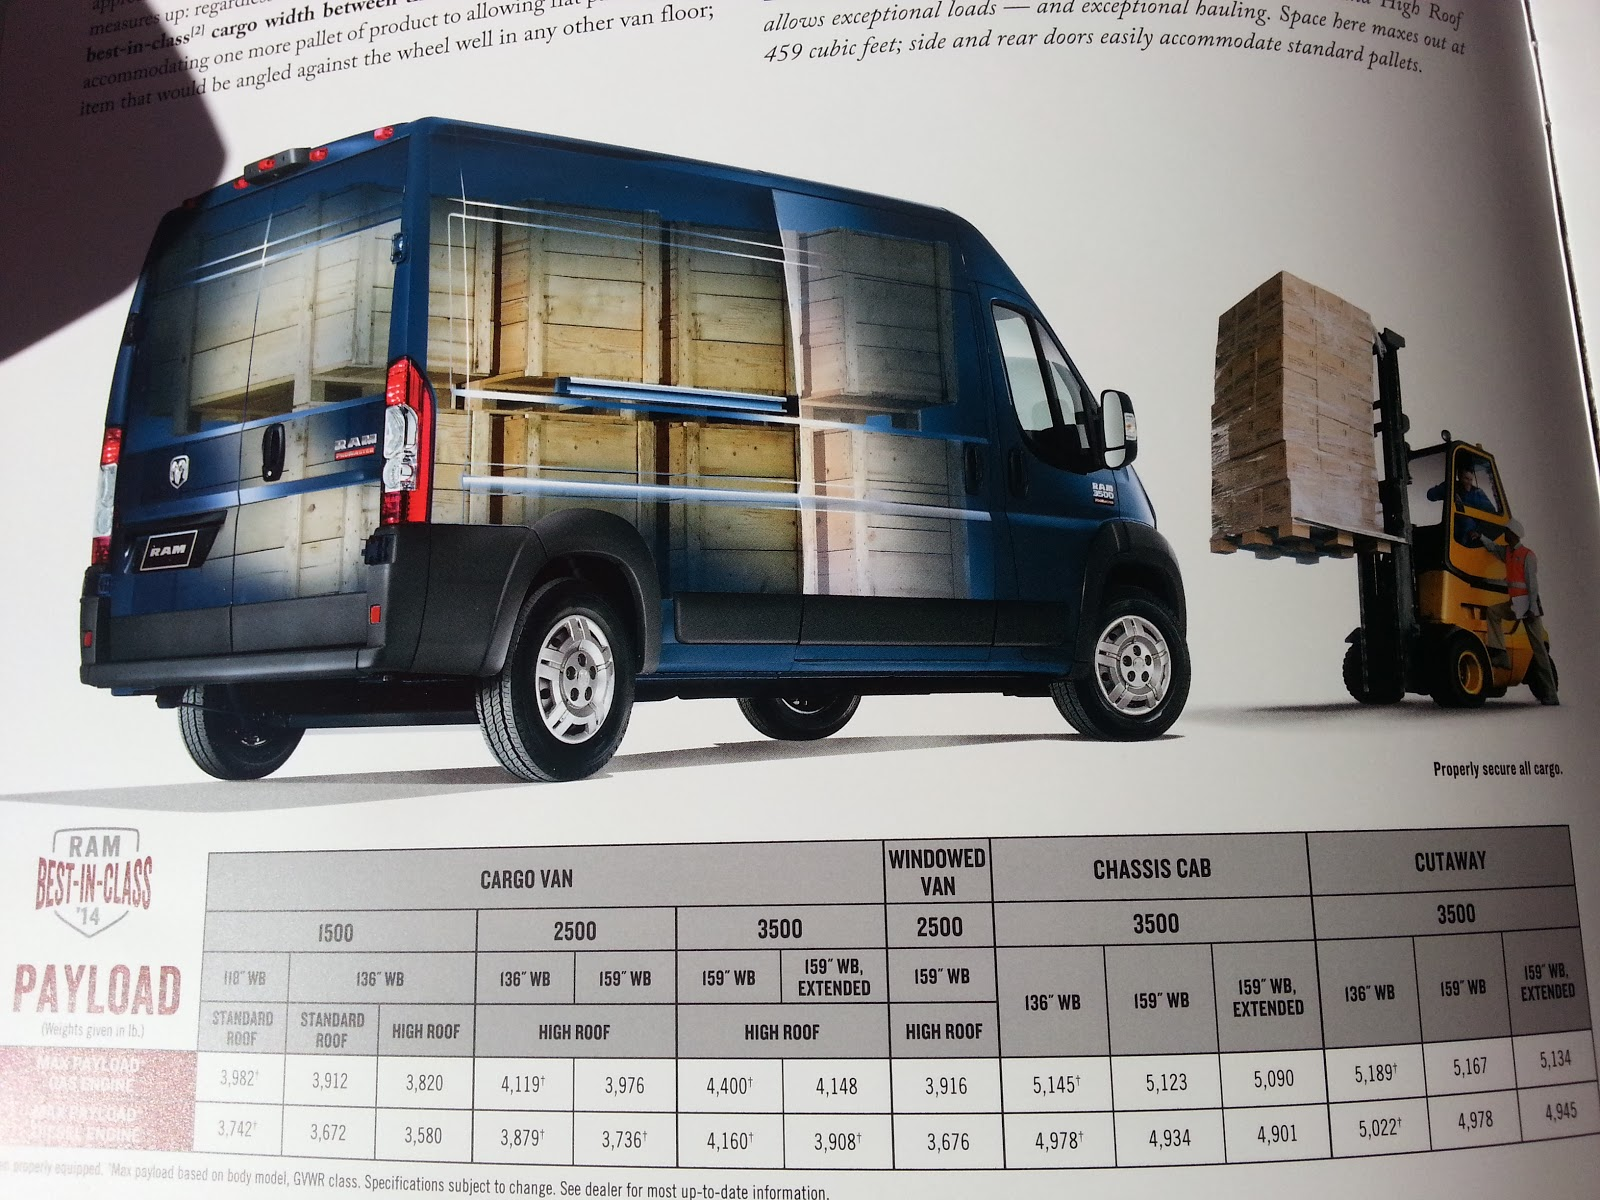 Jeep Dealership Dfw >> What is max payload weight New Ram ProMaster Cargo Van 1500, 2500 and 3500 with gas or diesel ...